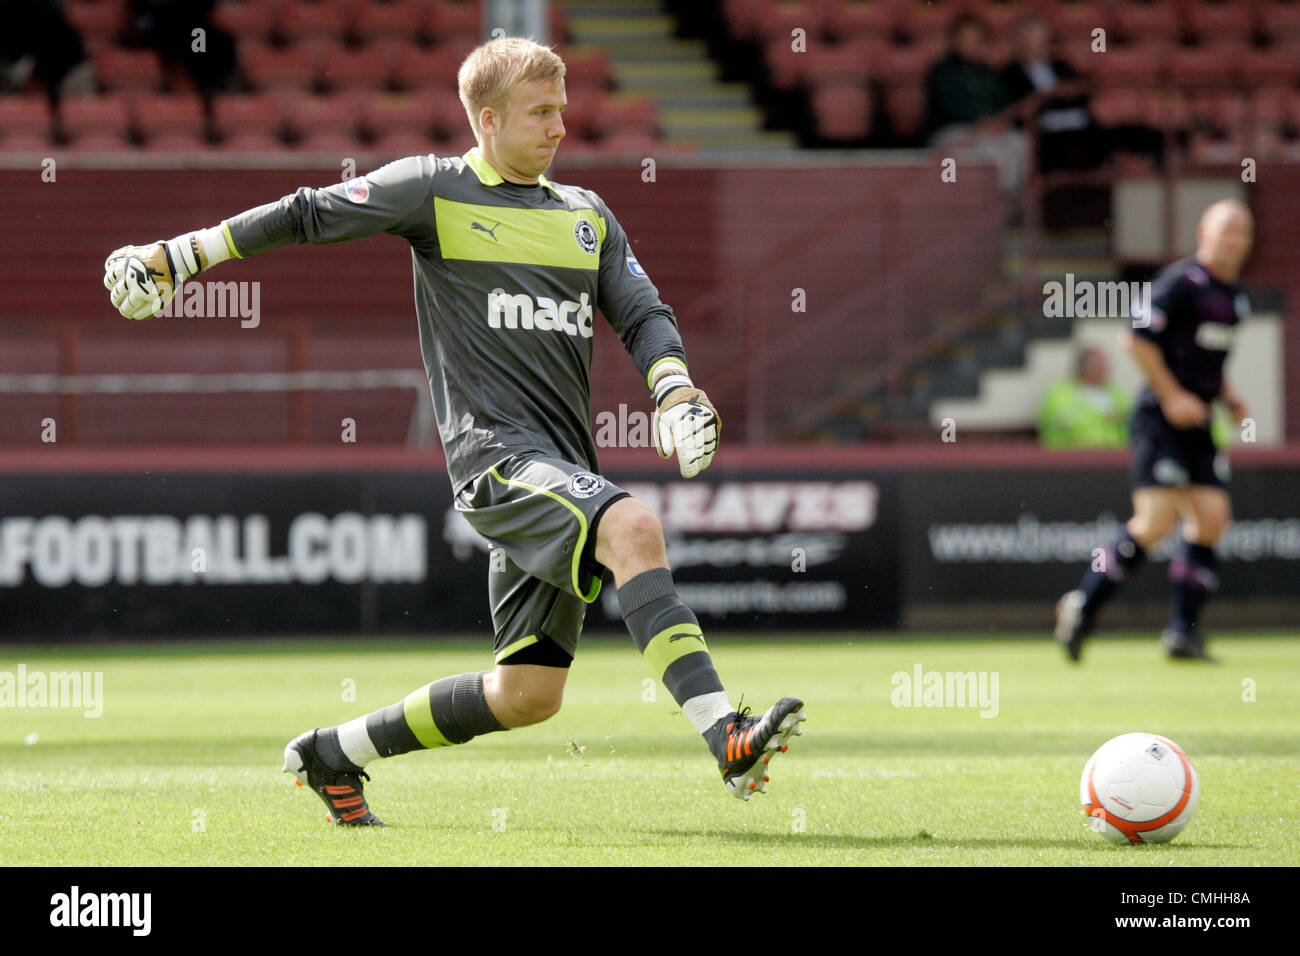 11th Aug 2012. 11.08.2012 Glasgow, Scotland. 1 Scott Fox in action during the Scottish Football League Division - Stock Image